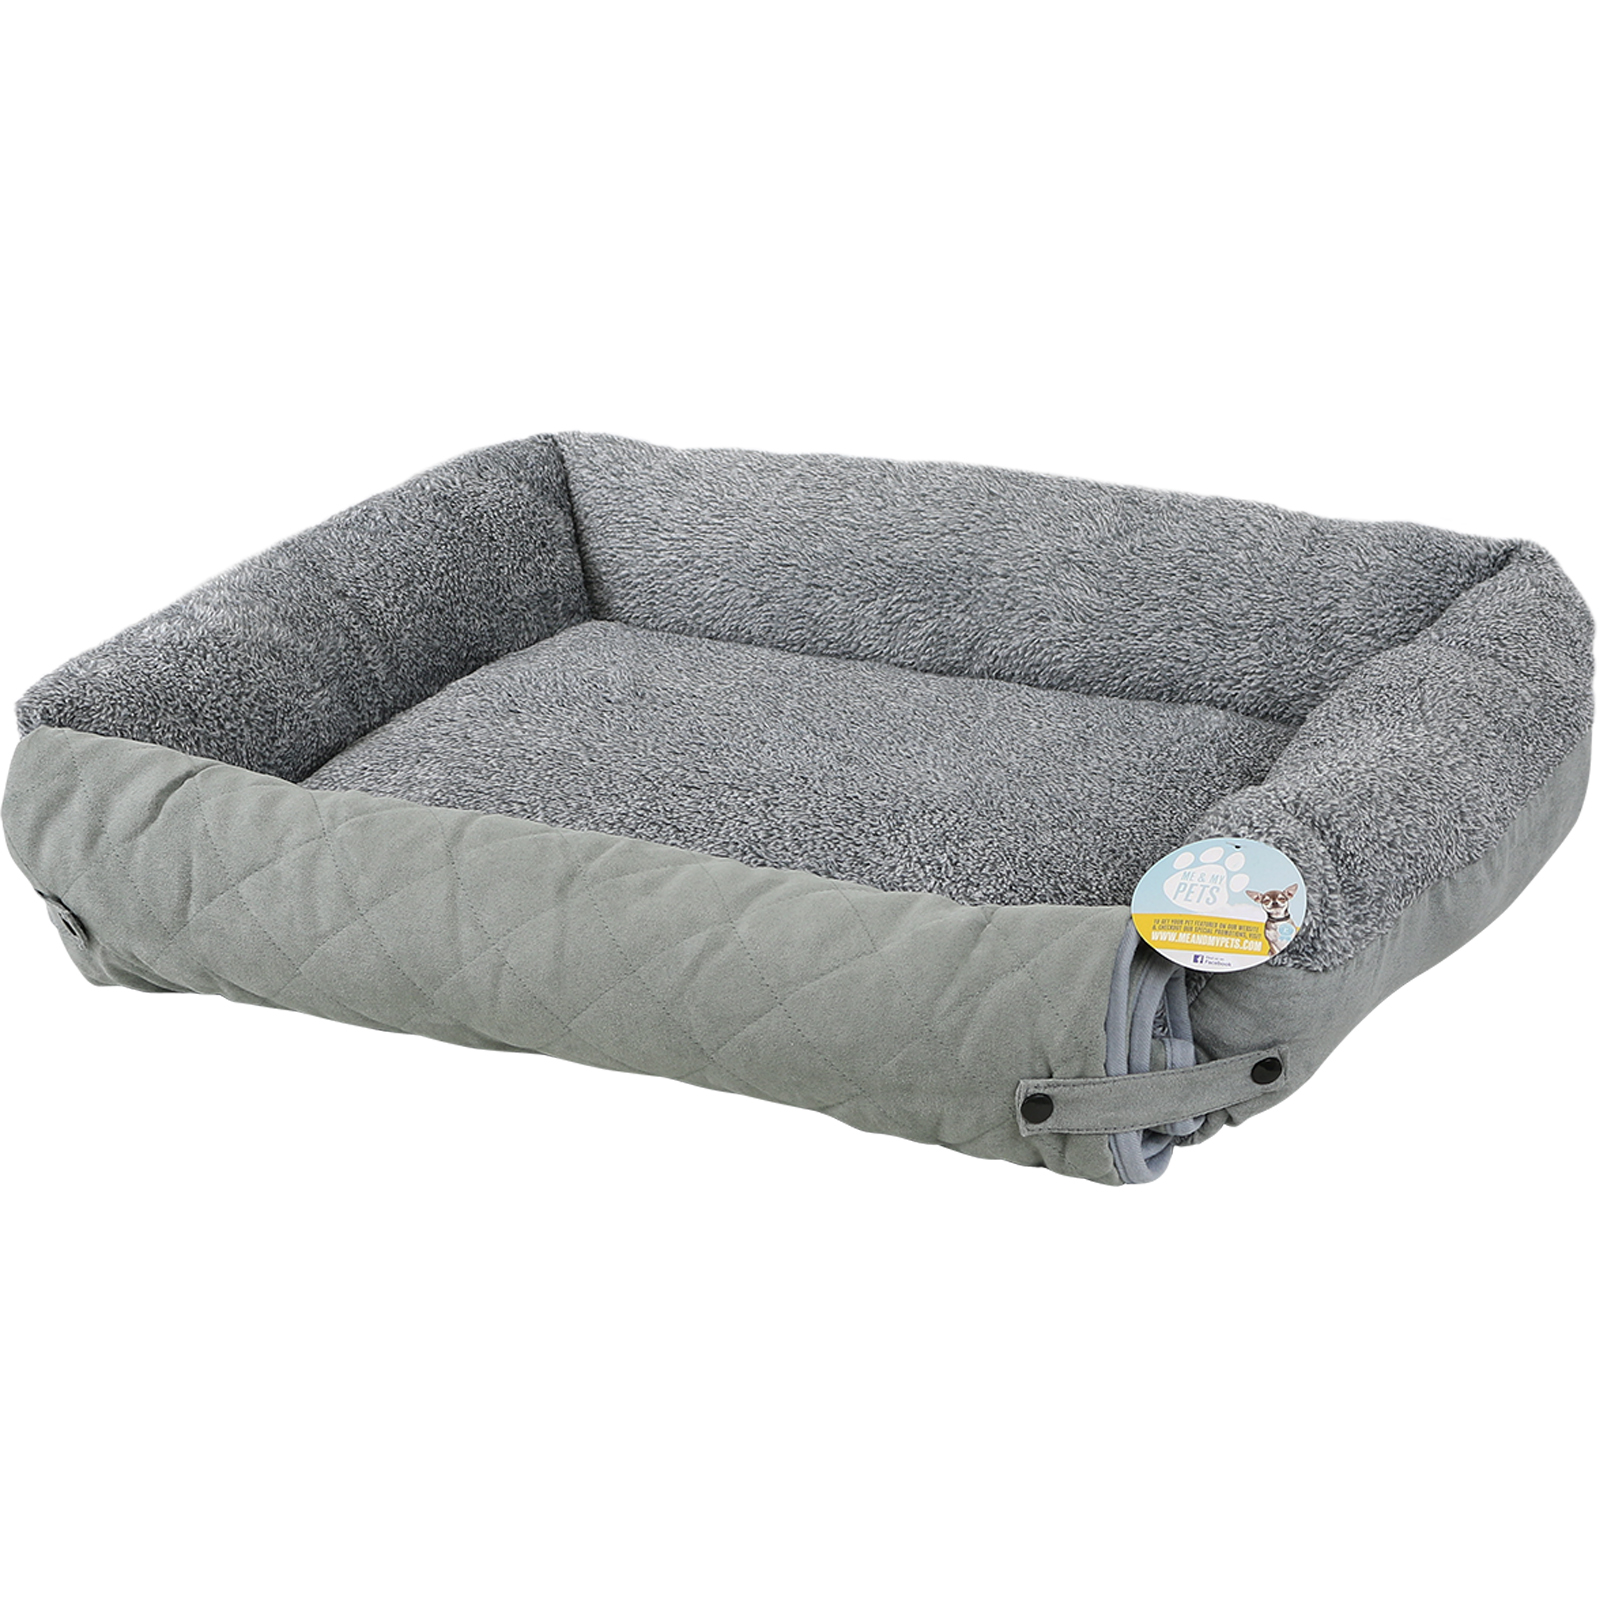 Me Amp My Pet Quilted Grey Fleece Fold Out Cat Dog Bed Sofa